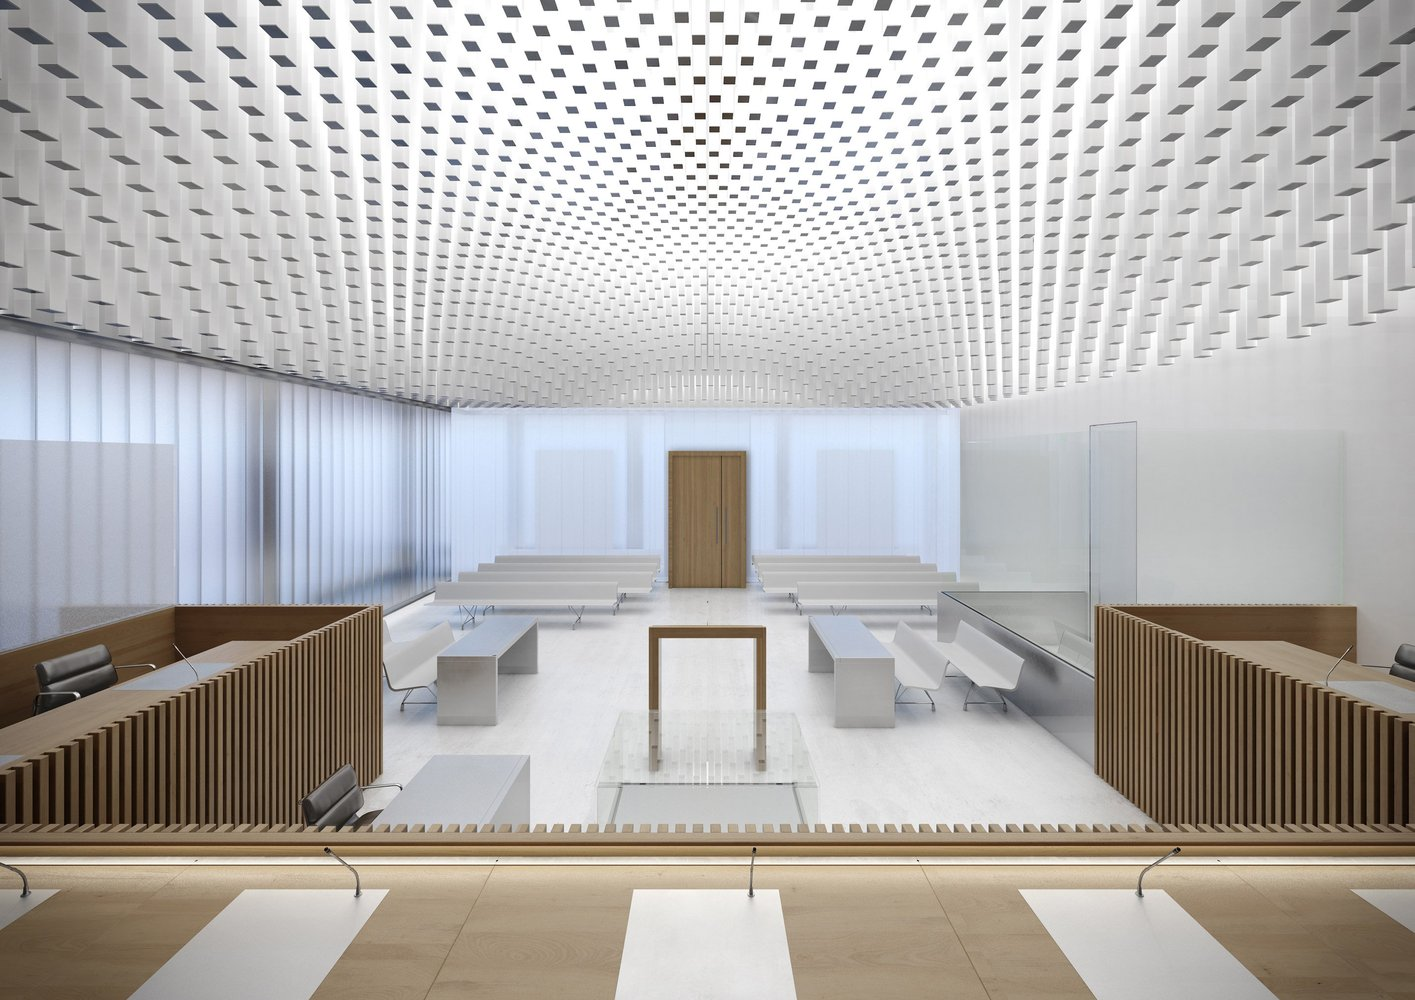 New Law Courts Of Caen Competition Entry / Be Baumschlager Eberle,Rendering  By RSI